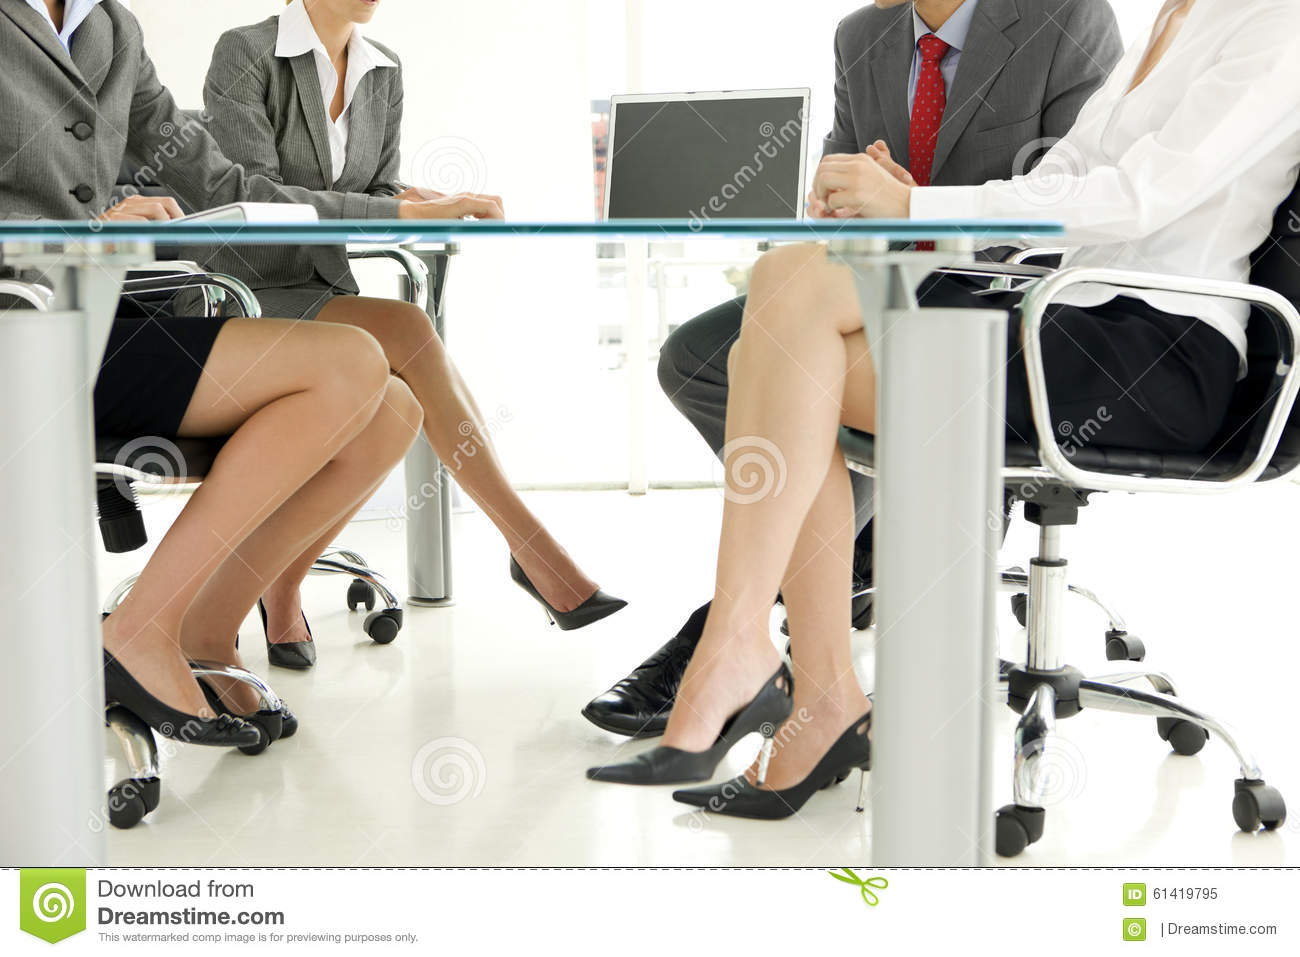 Legs Under Table : Legs At Business Meeting Stock Photo - Image: 61419795